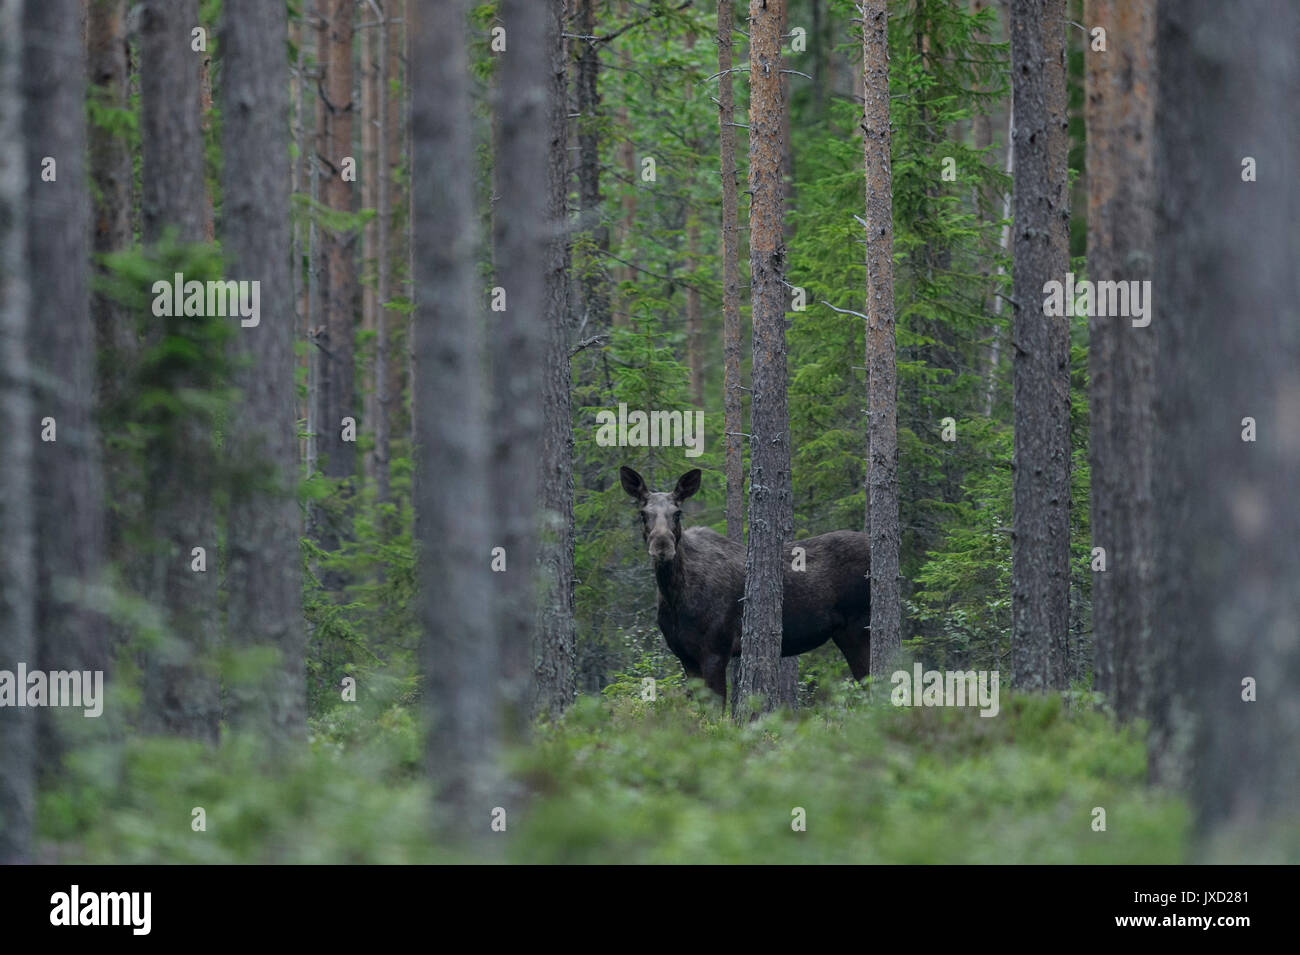 Moose in a Swedish forest - Stock Image